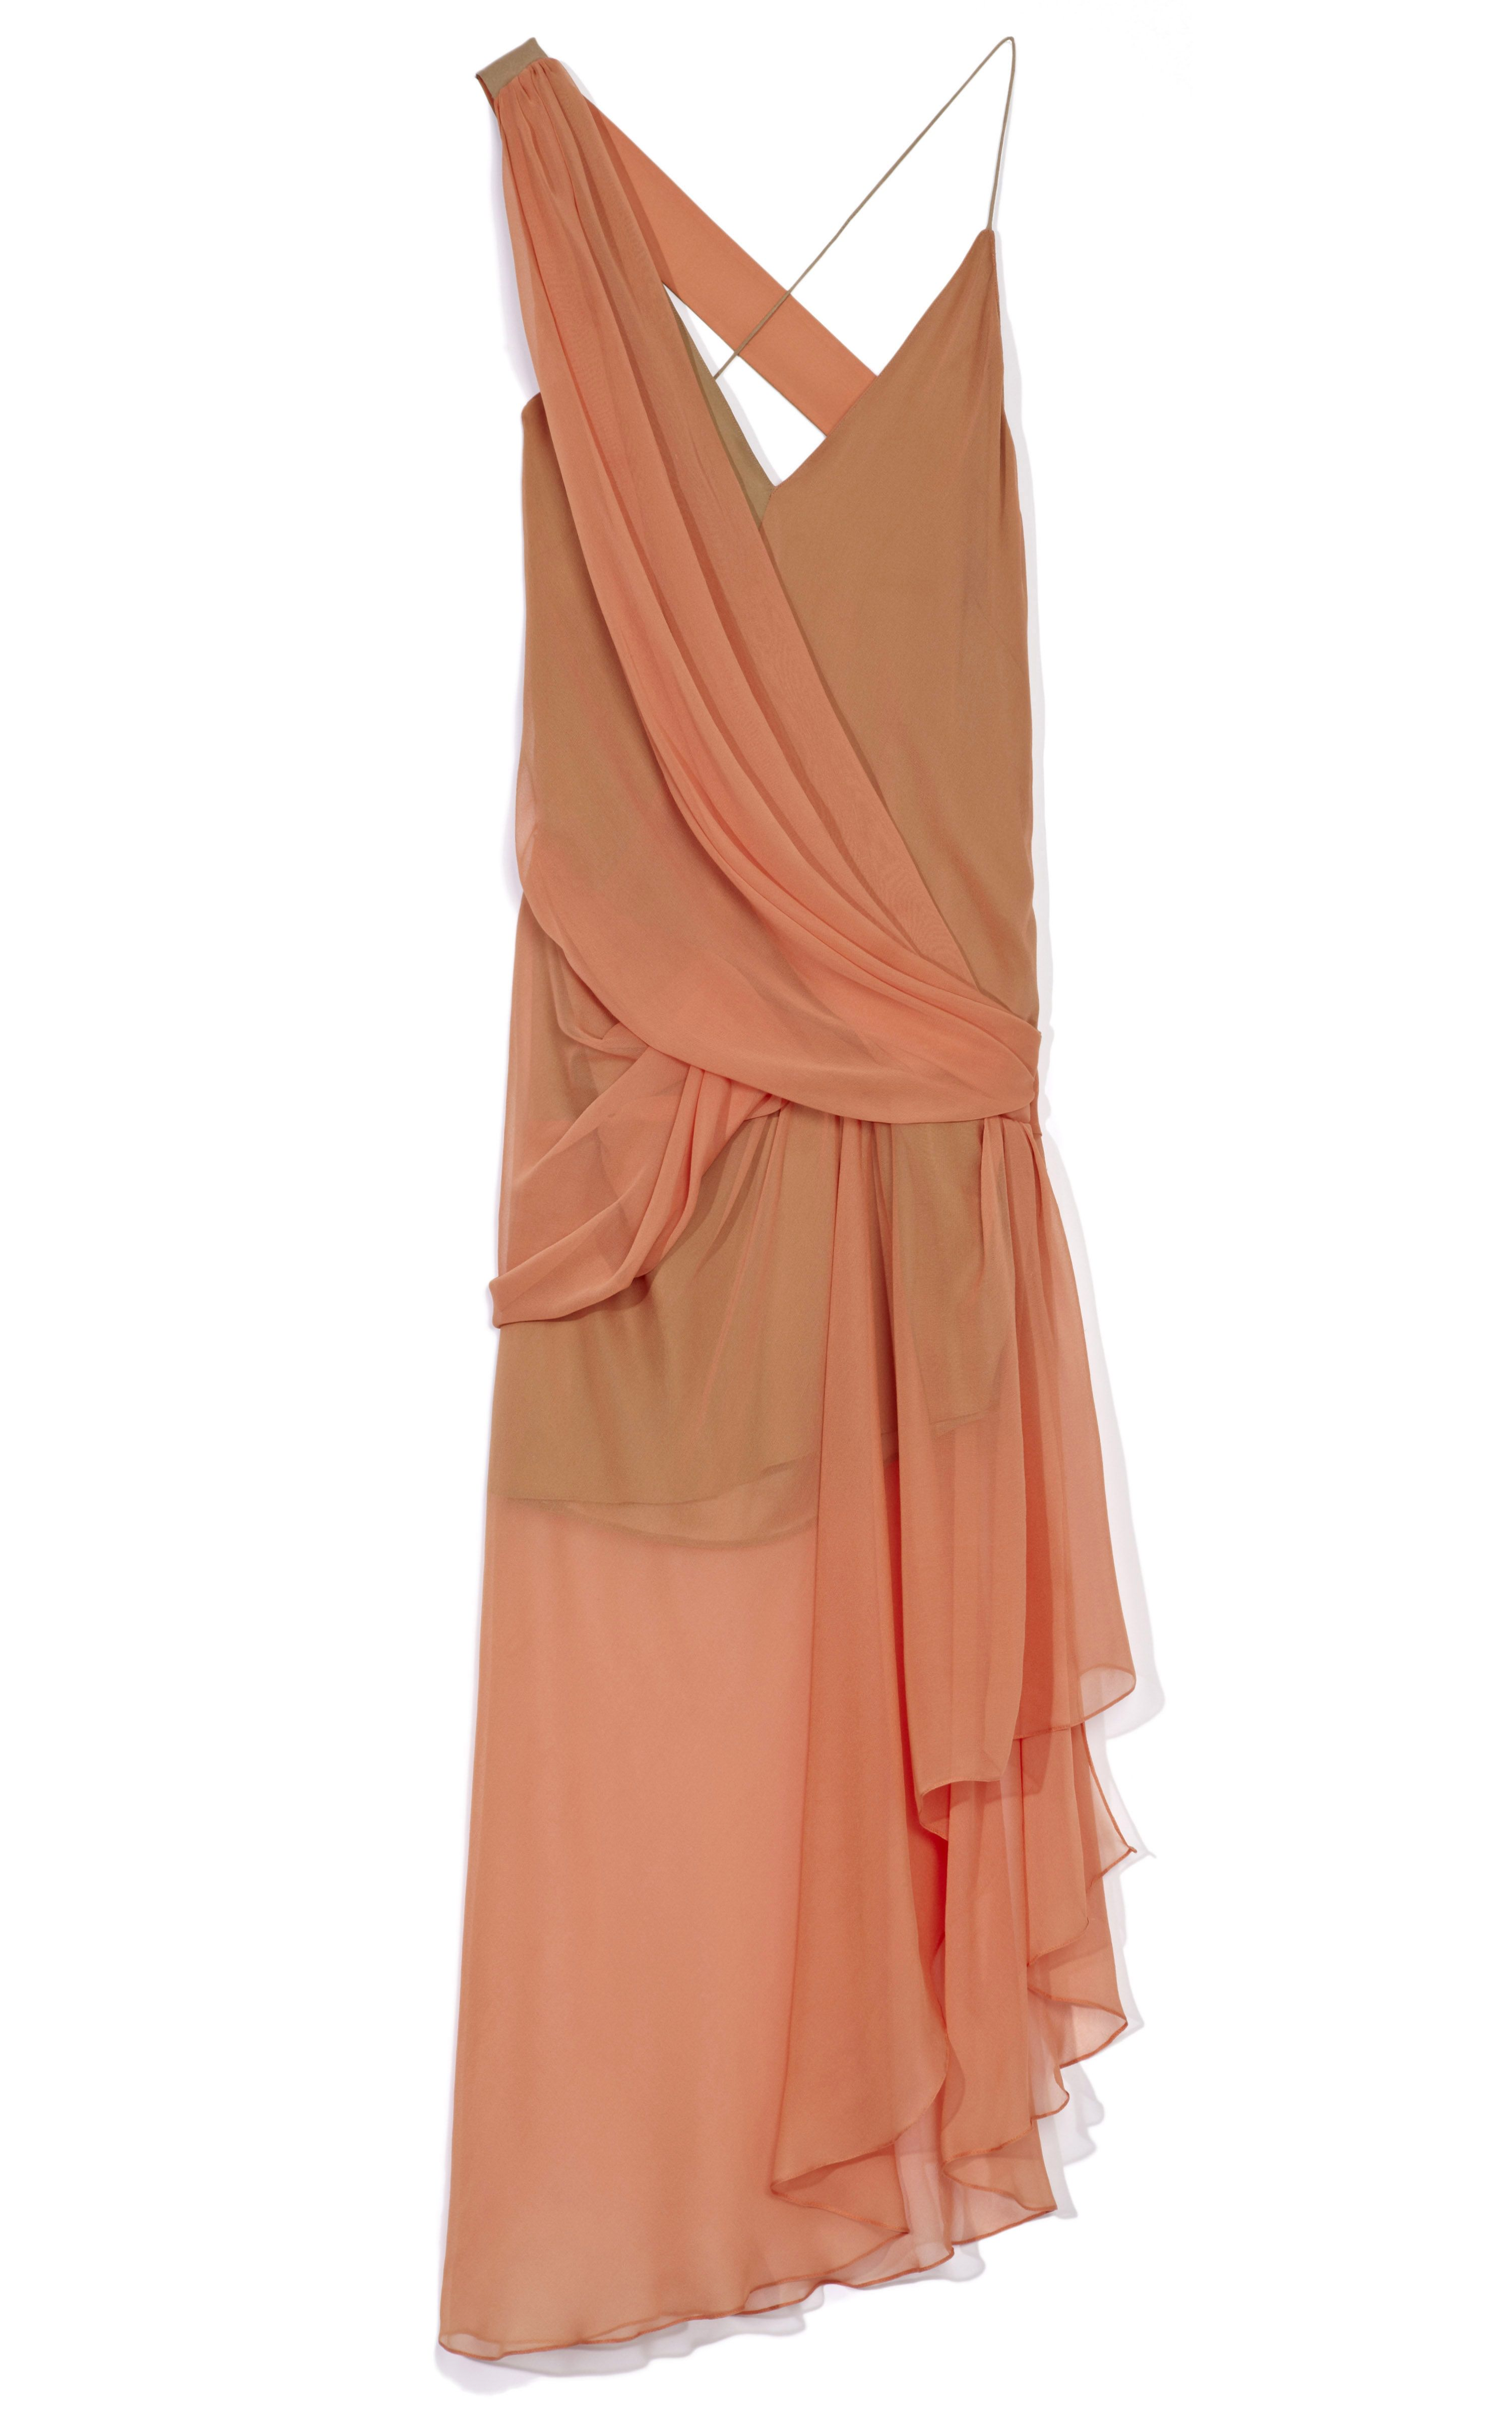 Sophie Theallet's Chiffon and Stretch Charmeuse Draped Dress